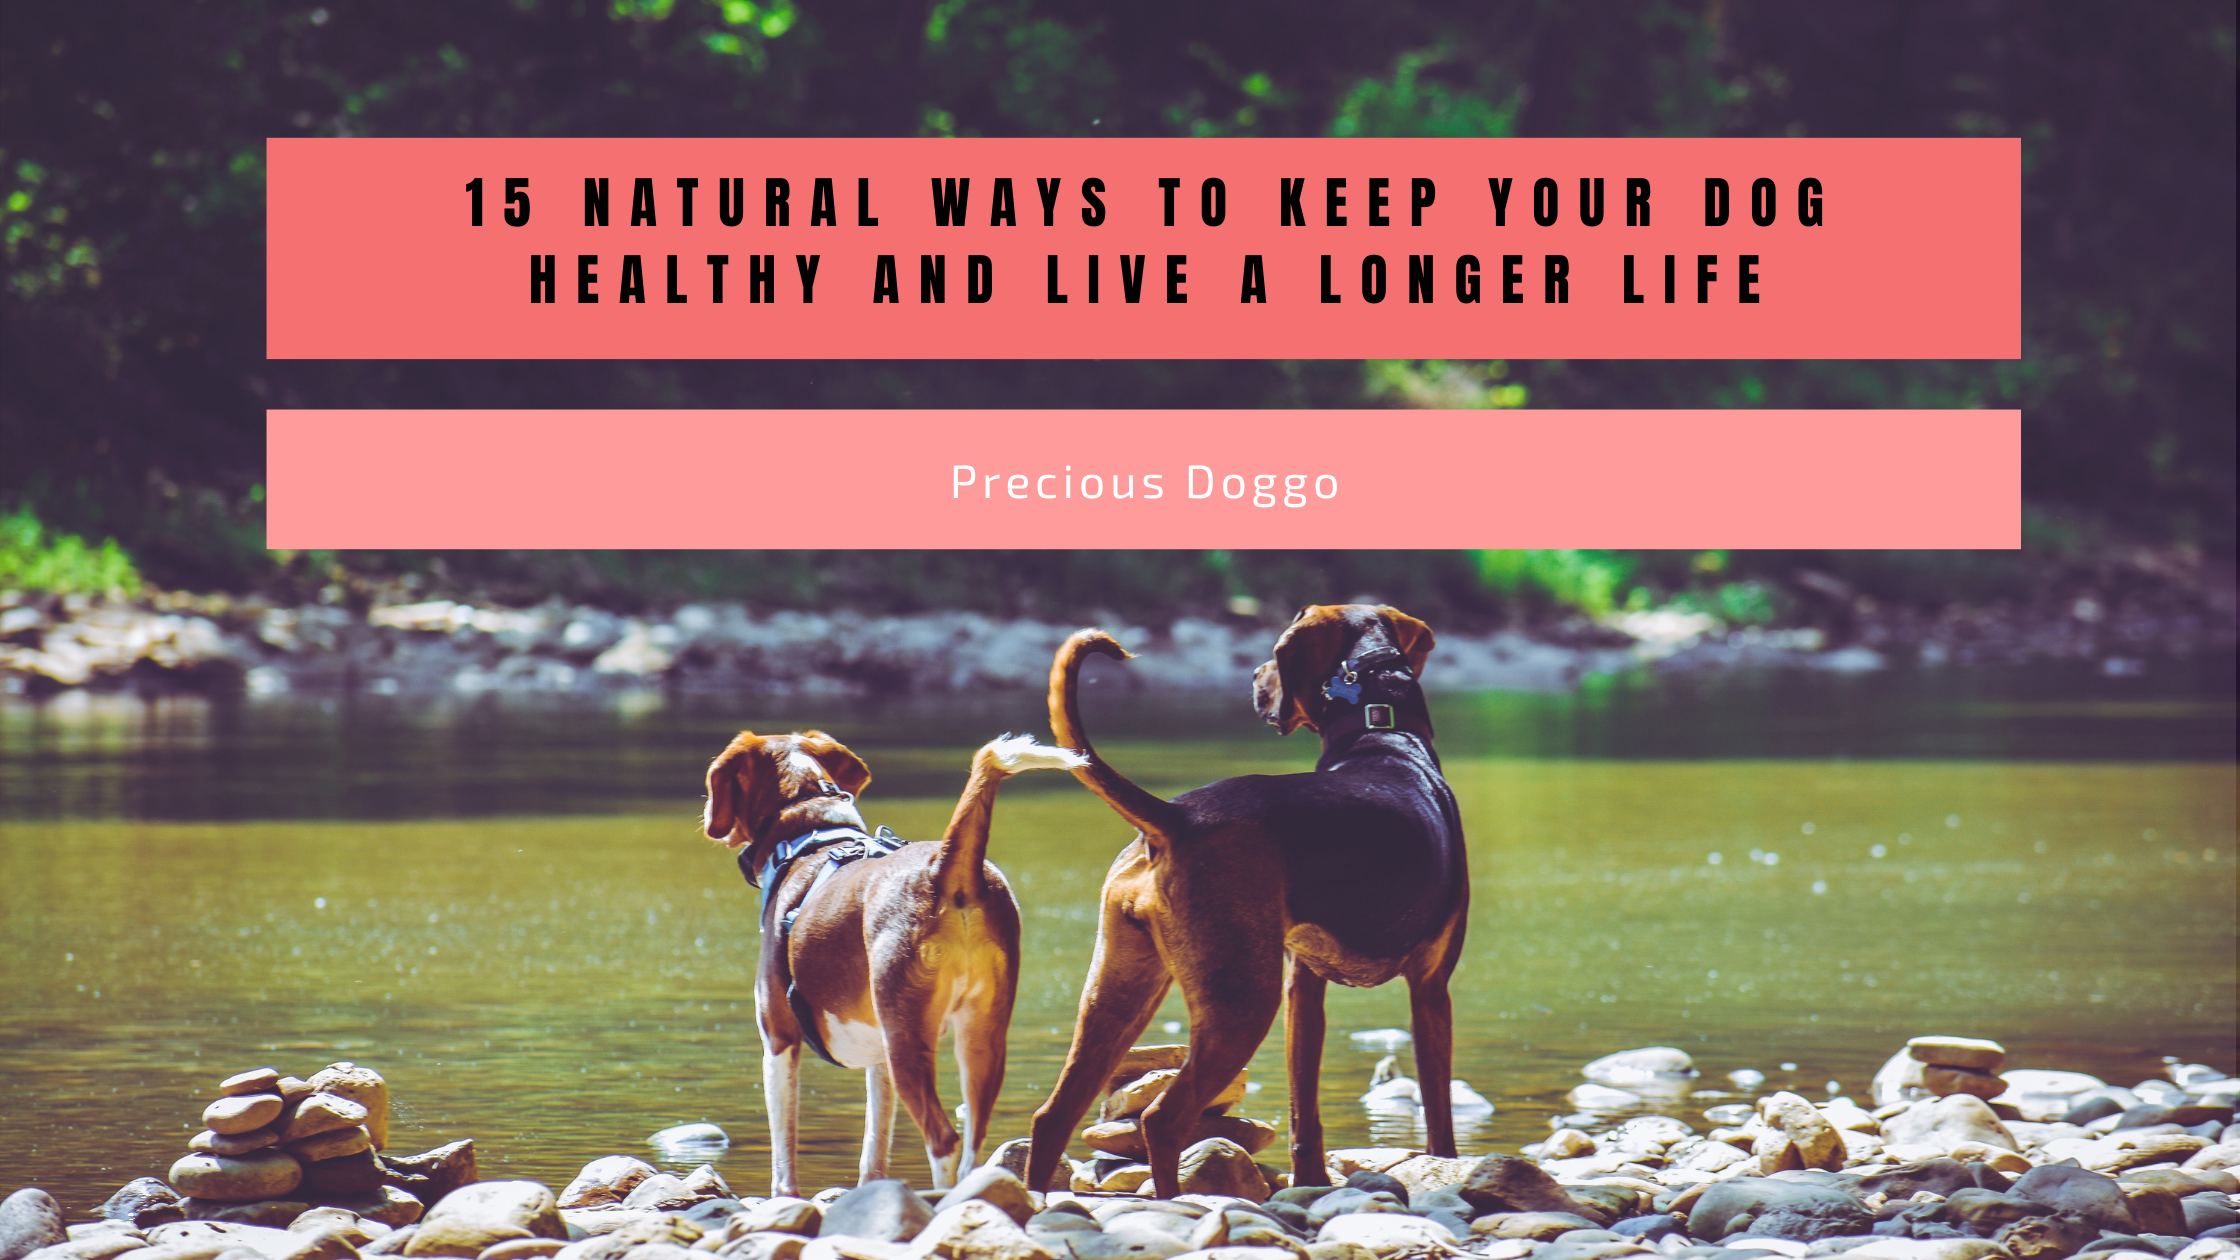 Ways to keep your dog healthy and live longer